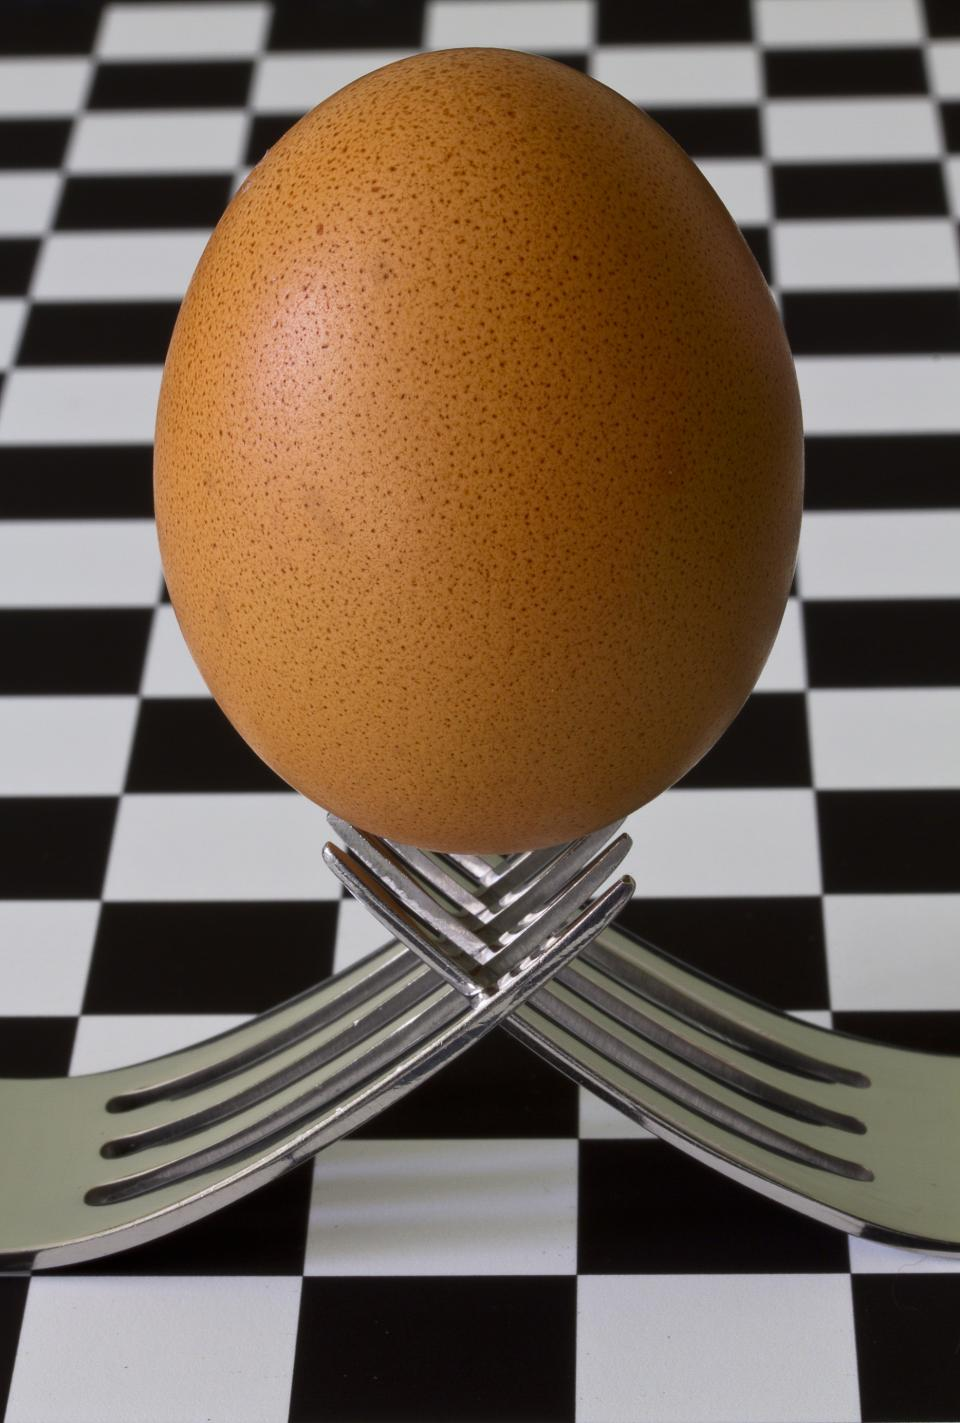 still items things forks egg balance equilibrium checkered table photography